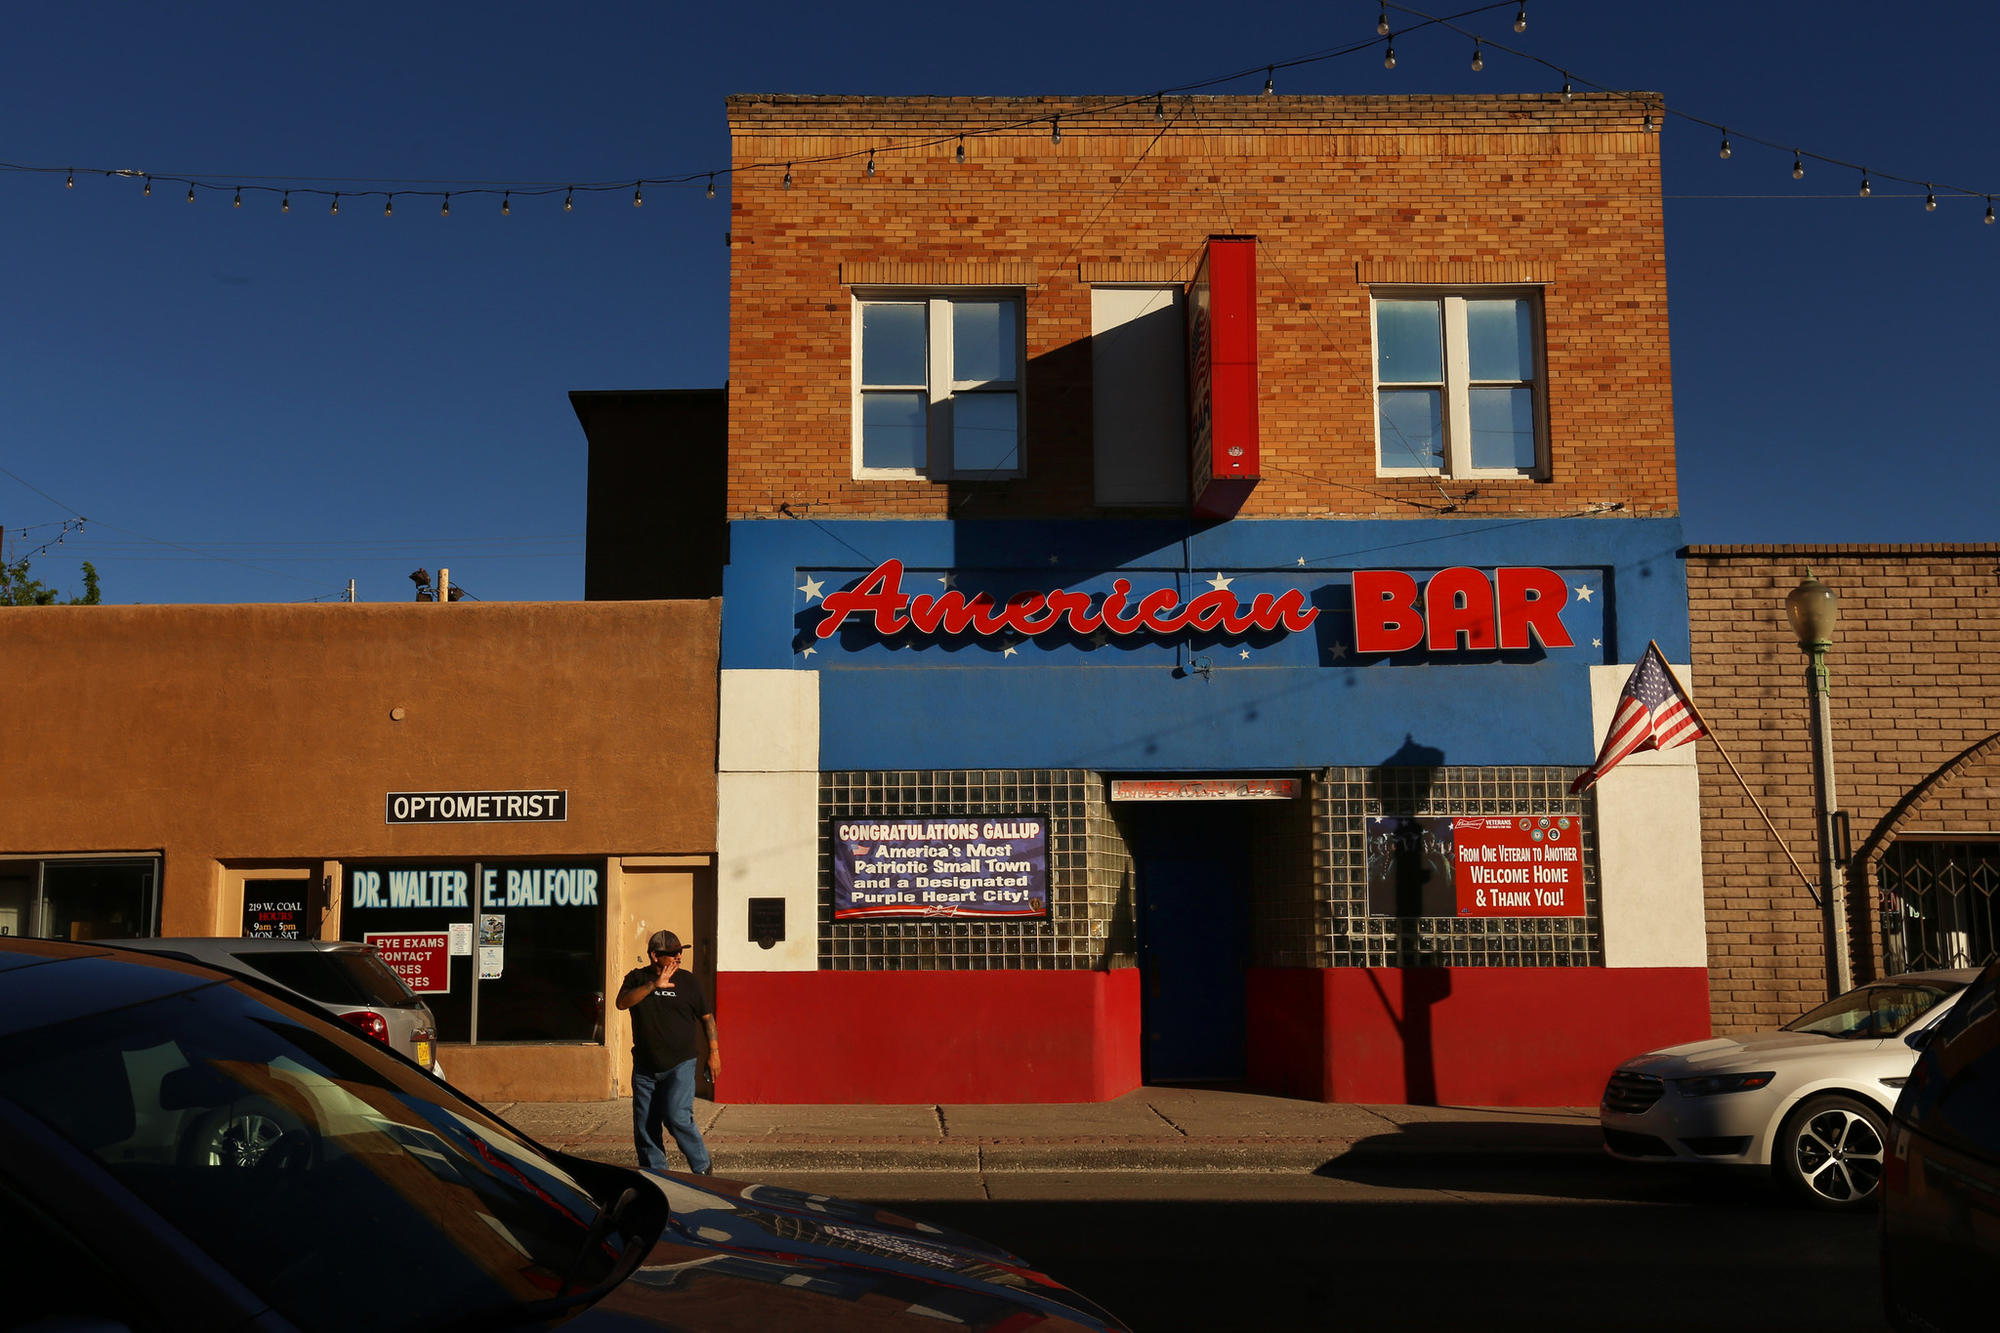 The American Bar in downtown Gallup, N.M., is not far from where Hiroshi Miyamura spent his time growing up.